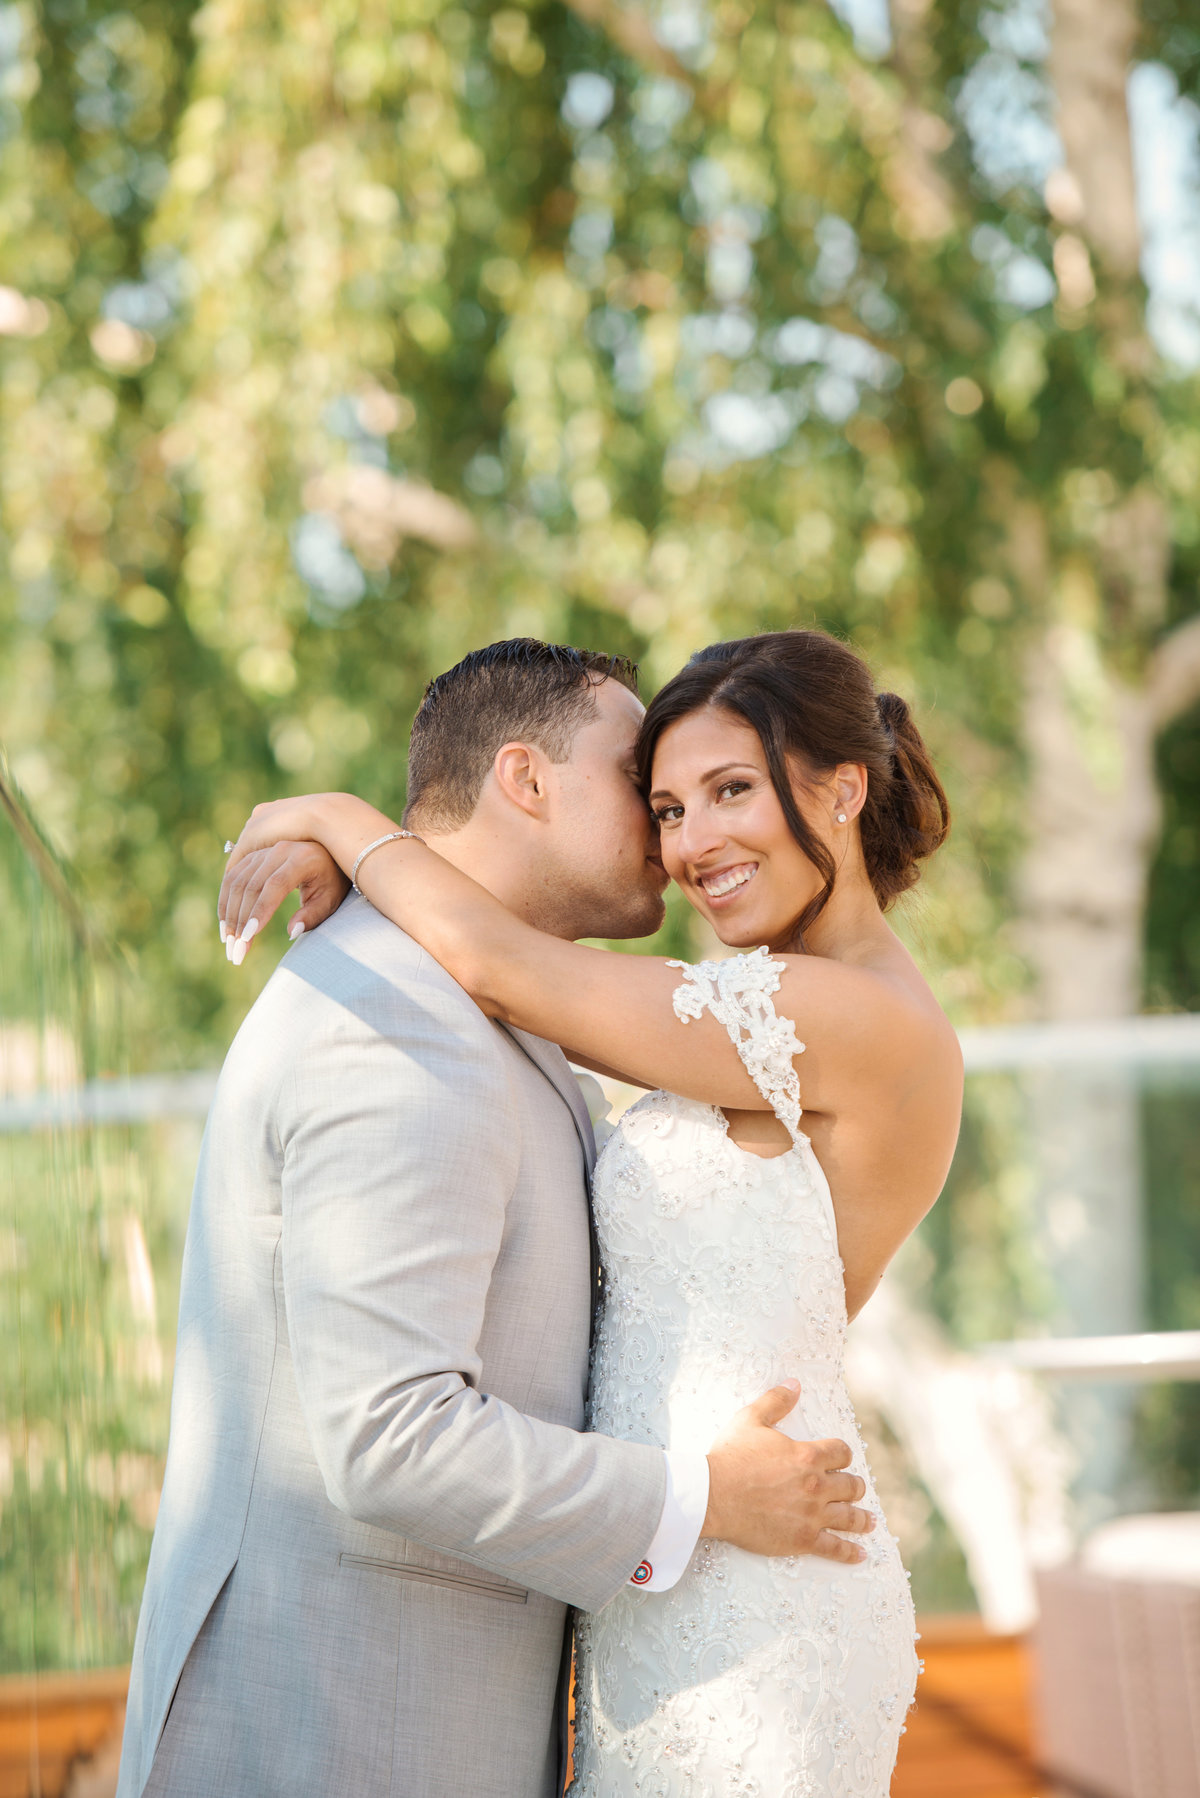 Natural light wedding photos at Harbor Club at Prime